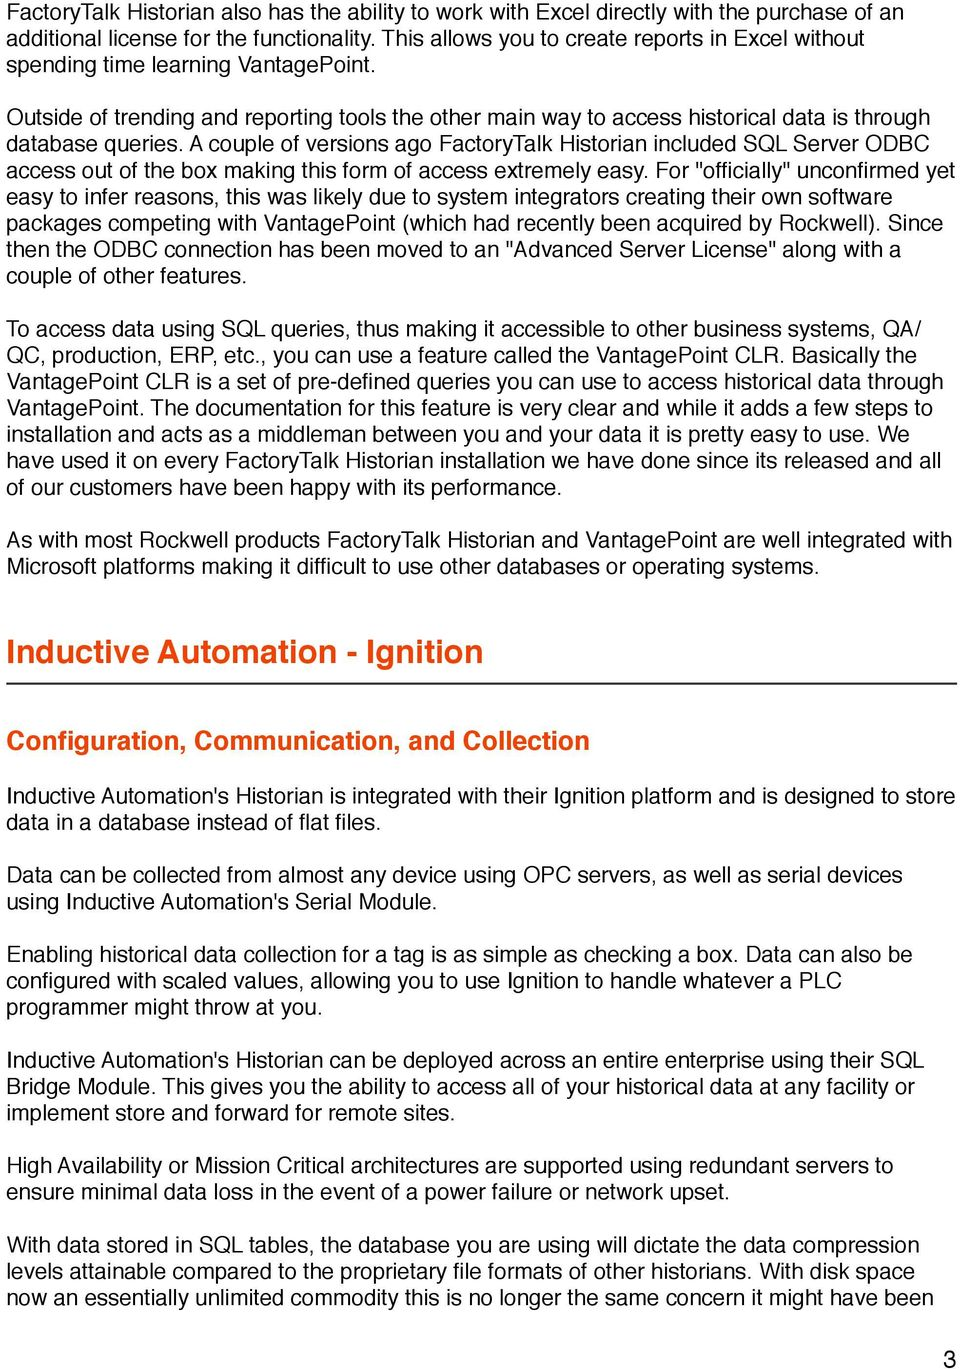 inductive automation ignition license key